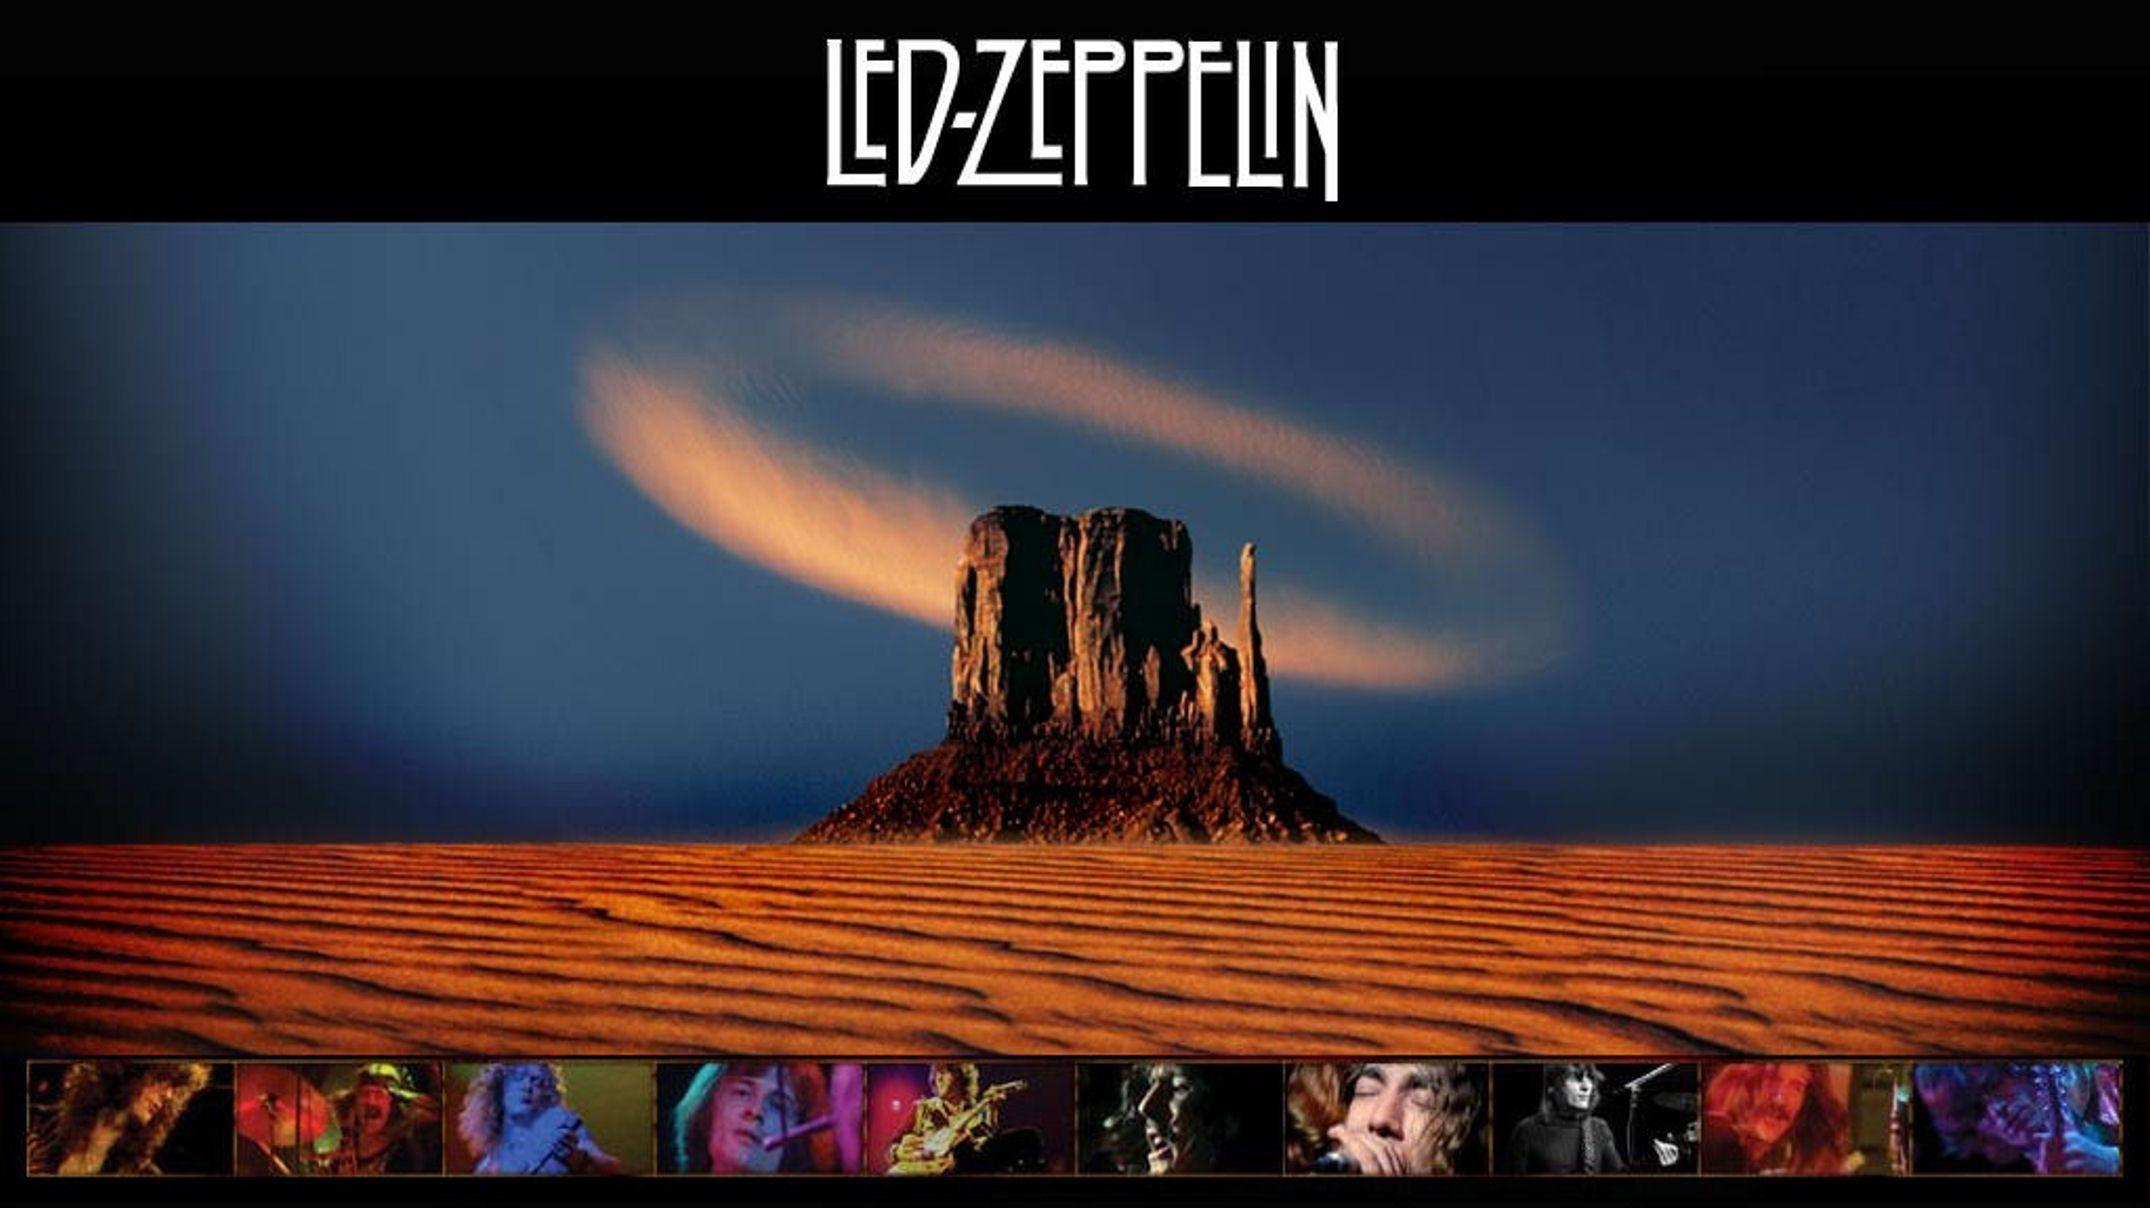 led zeppelin wallpaper - photo #13